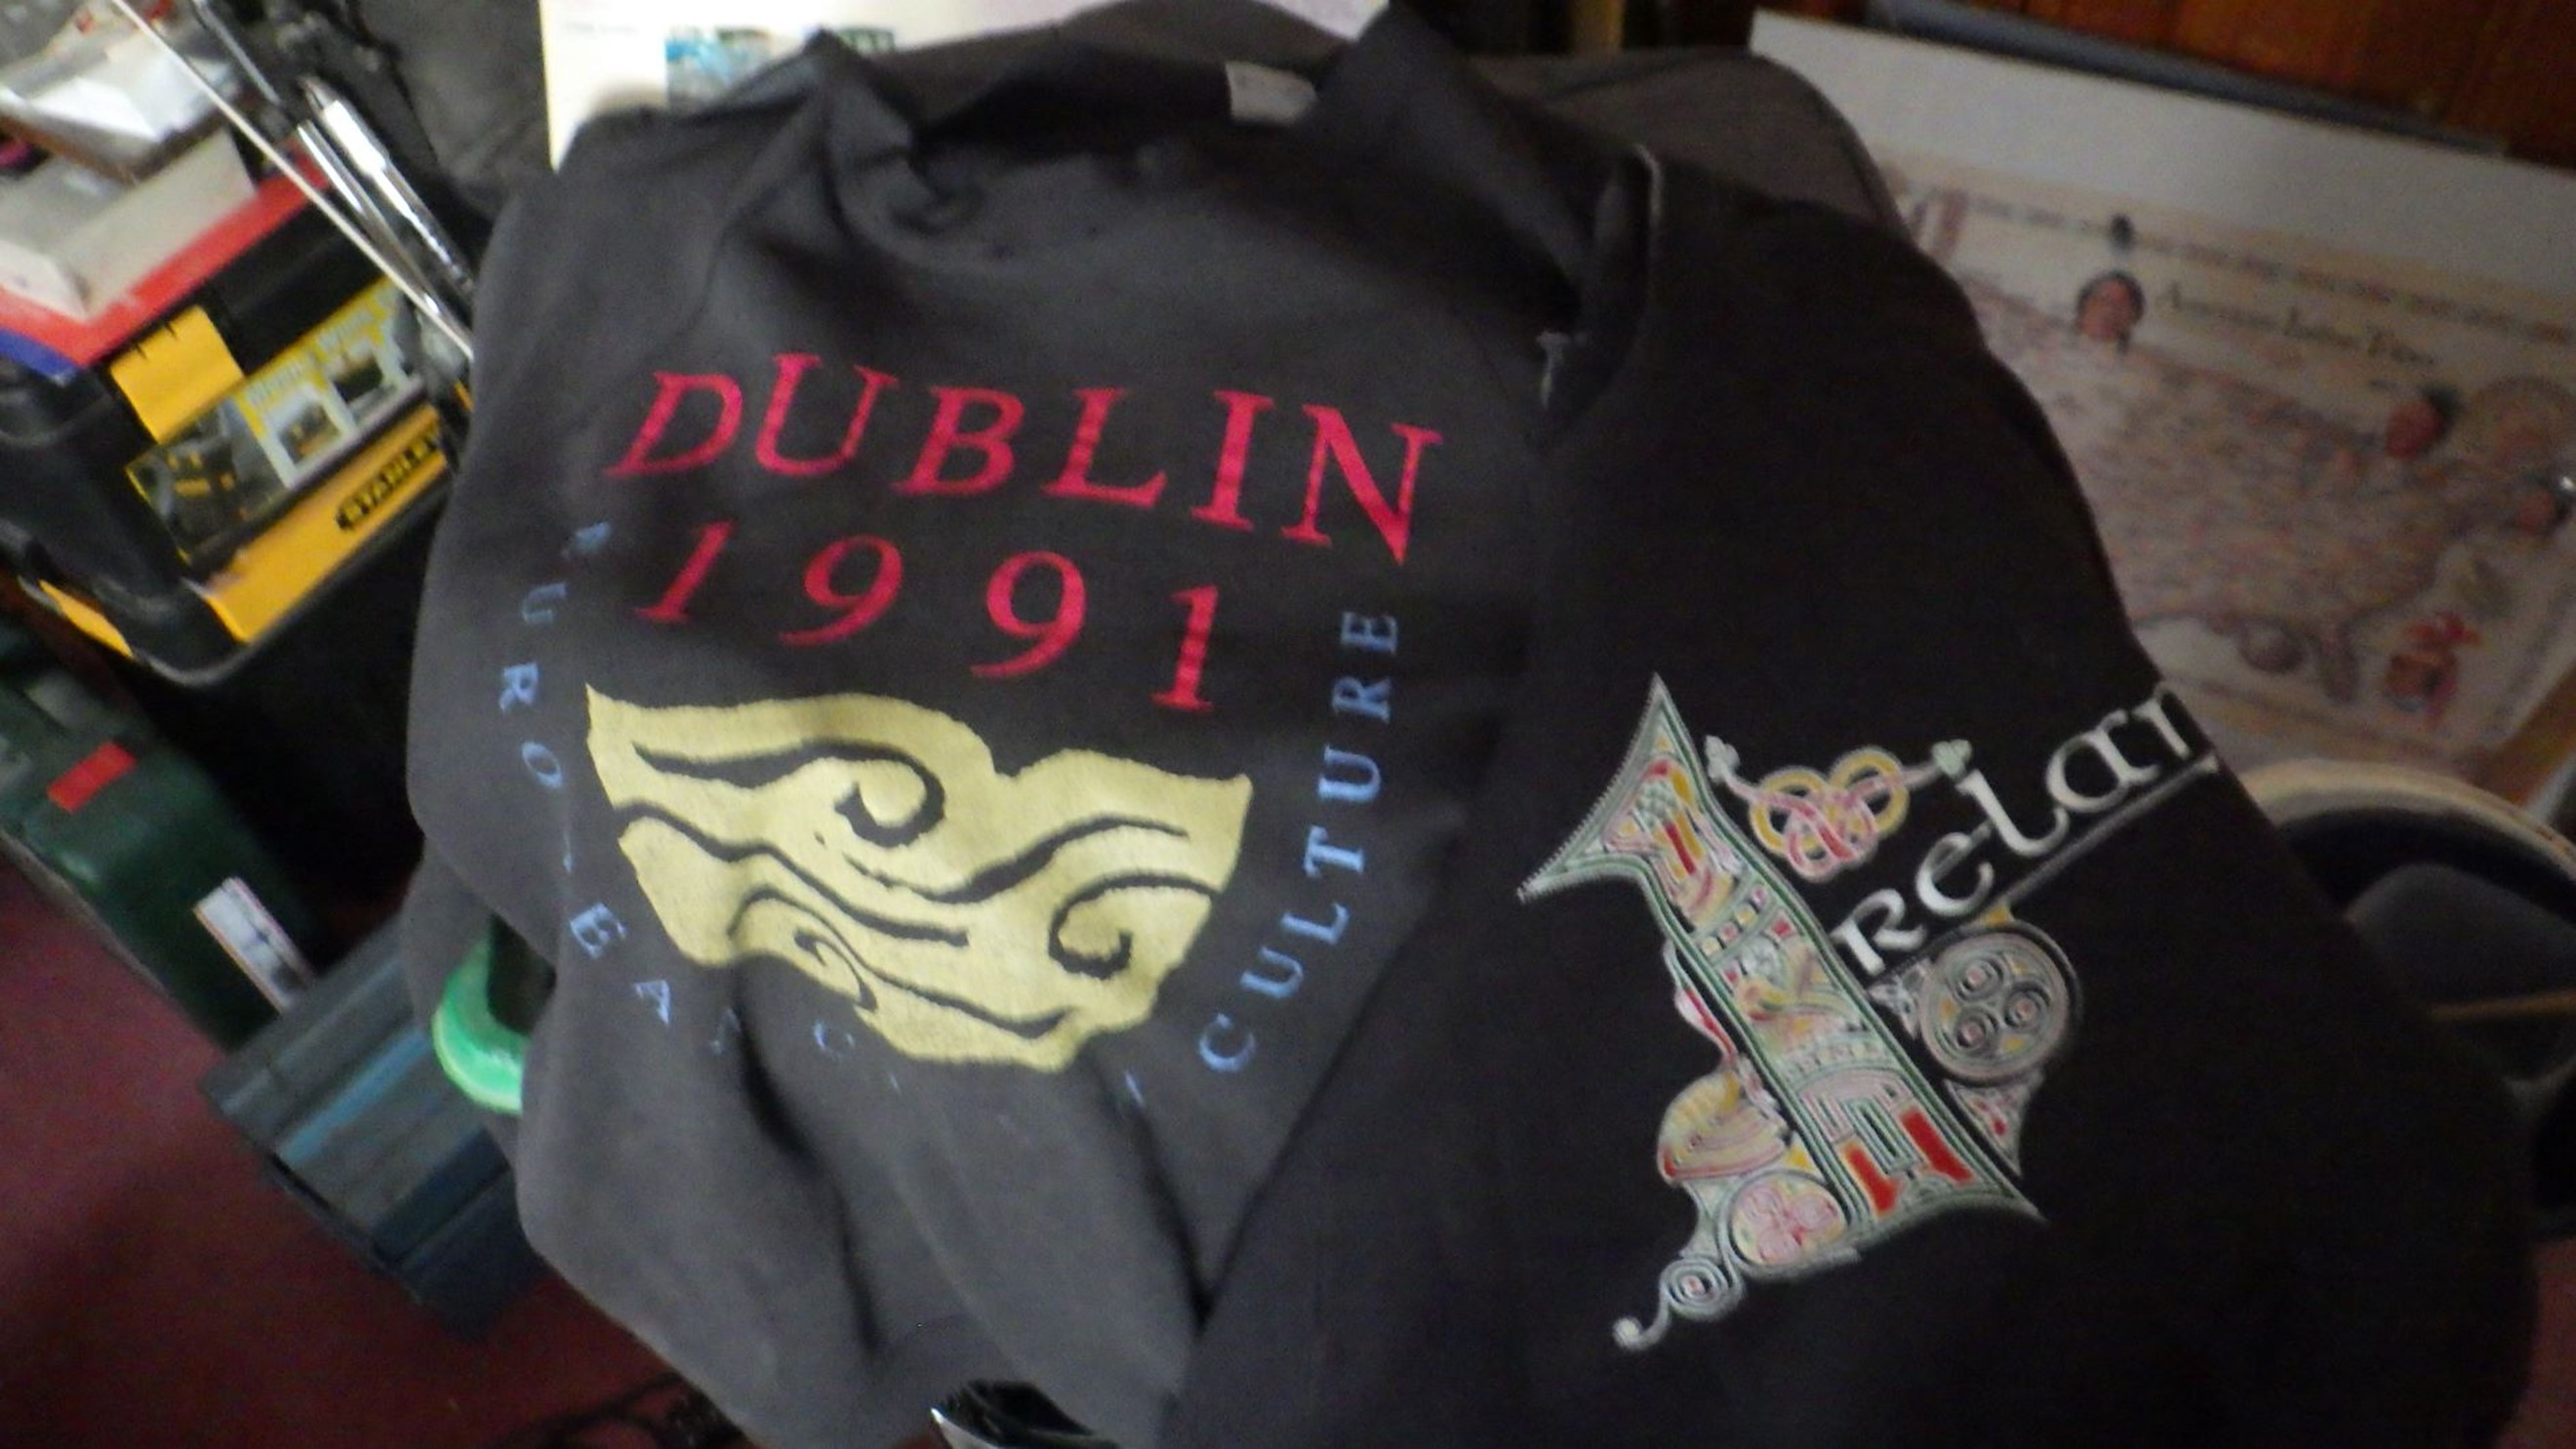 1991 was a fine year for, er, me going to Dublin and buying sweat shirts